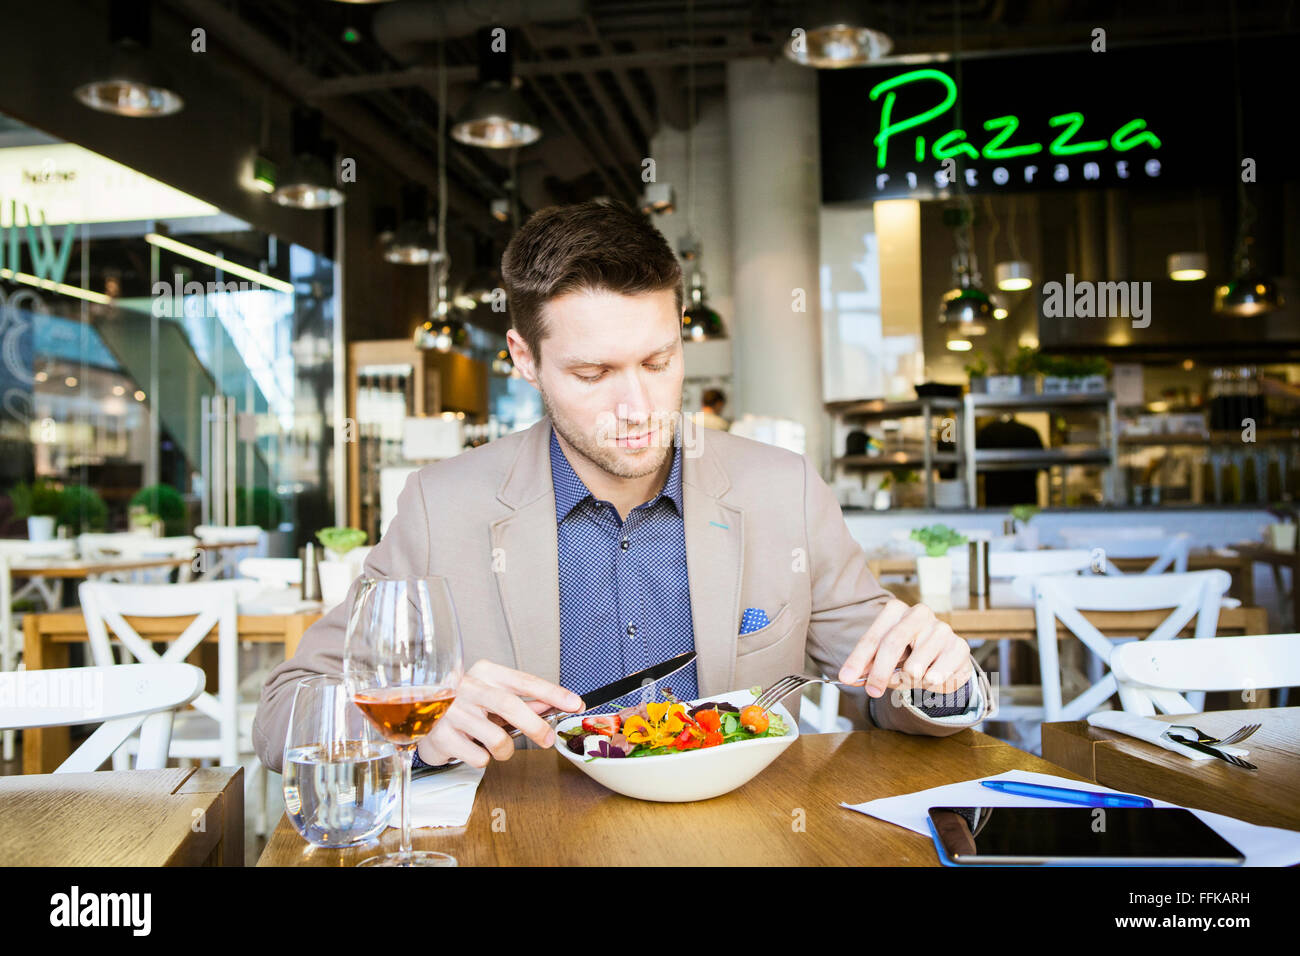 Mid adult man lunching in restaurant - Stock Image